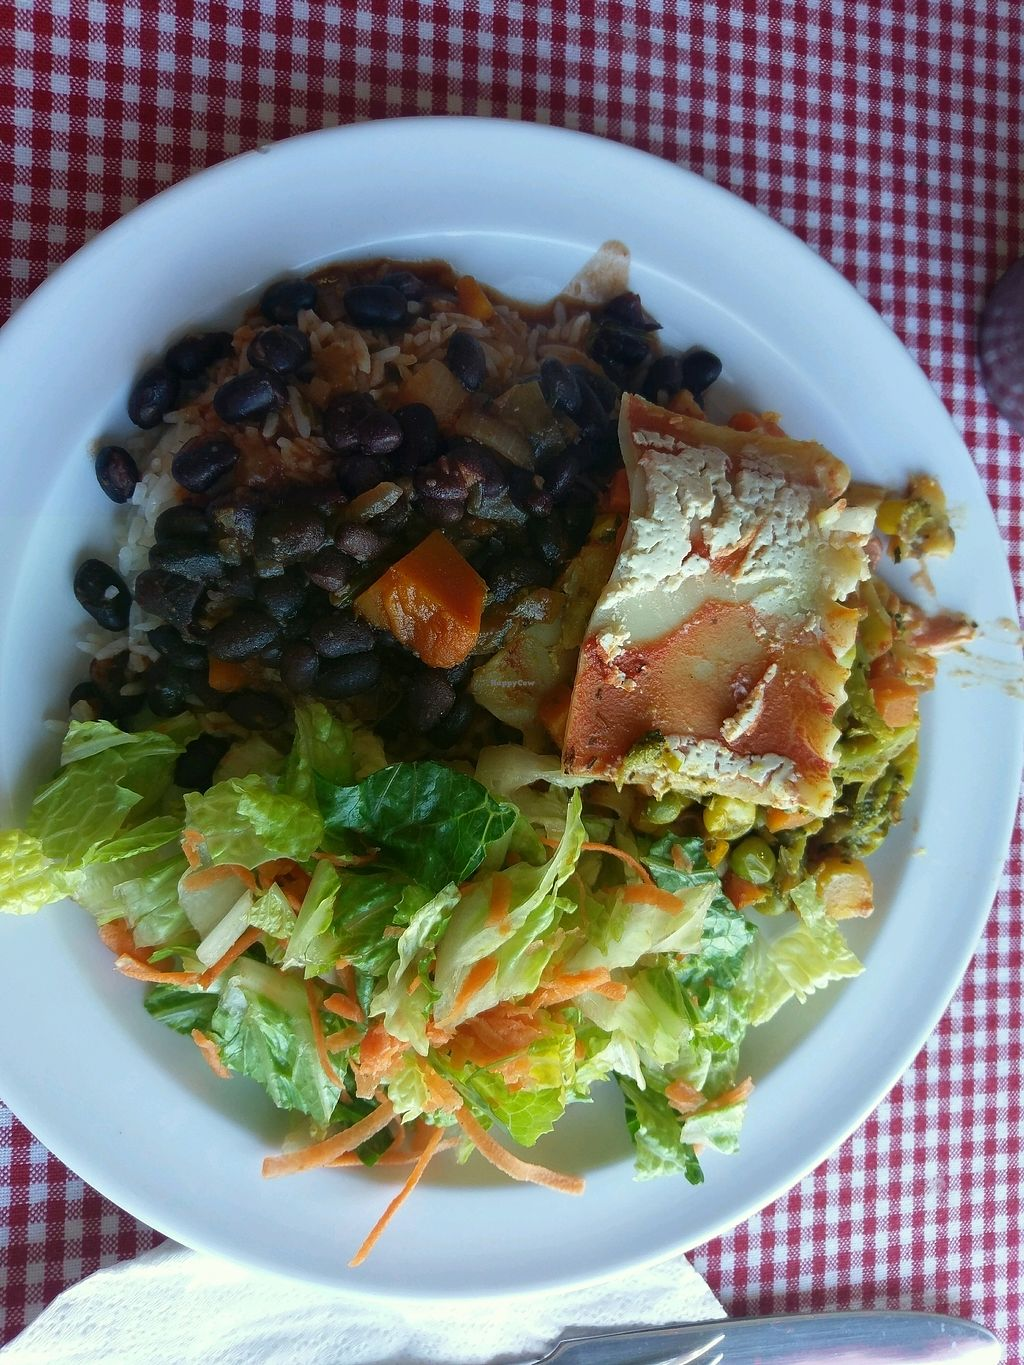 """Photo of Cocobana Restaurante Vegetariano  by <a href=""""/members/profile/ChristineLugo"""">ChristineLugo</a> <br/>vegan vegetable lasagna, rice (?basmati) and black beans <br/> January 10, 2018  - <a href='/contact/abuse/image/44338/345076'>Report</a>"""